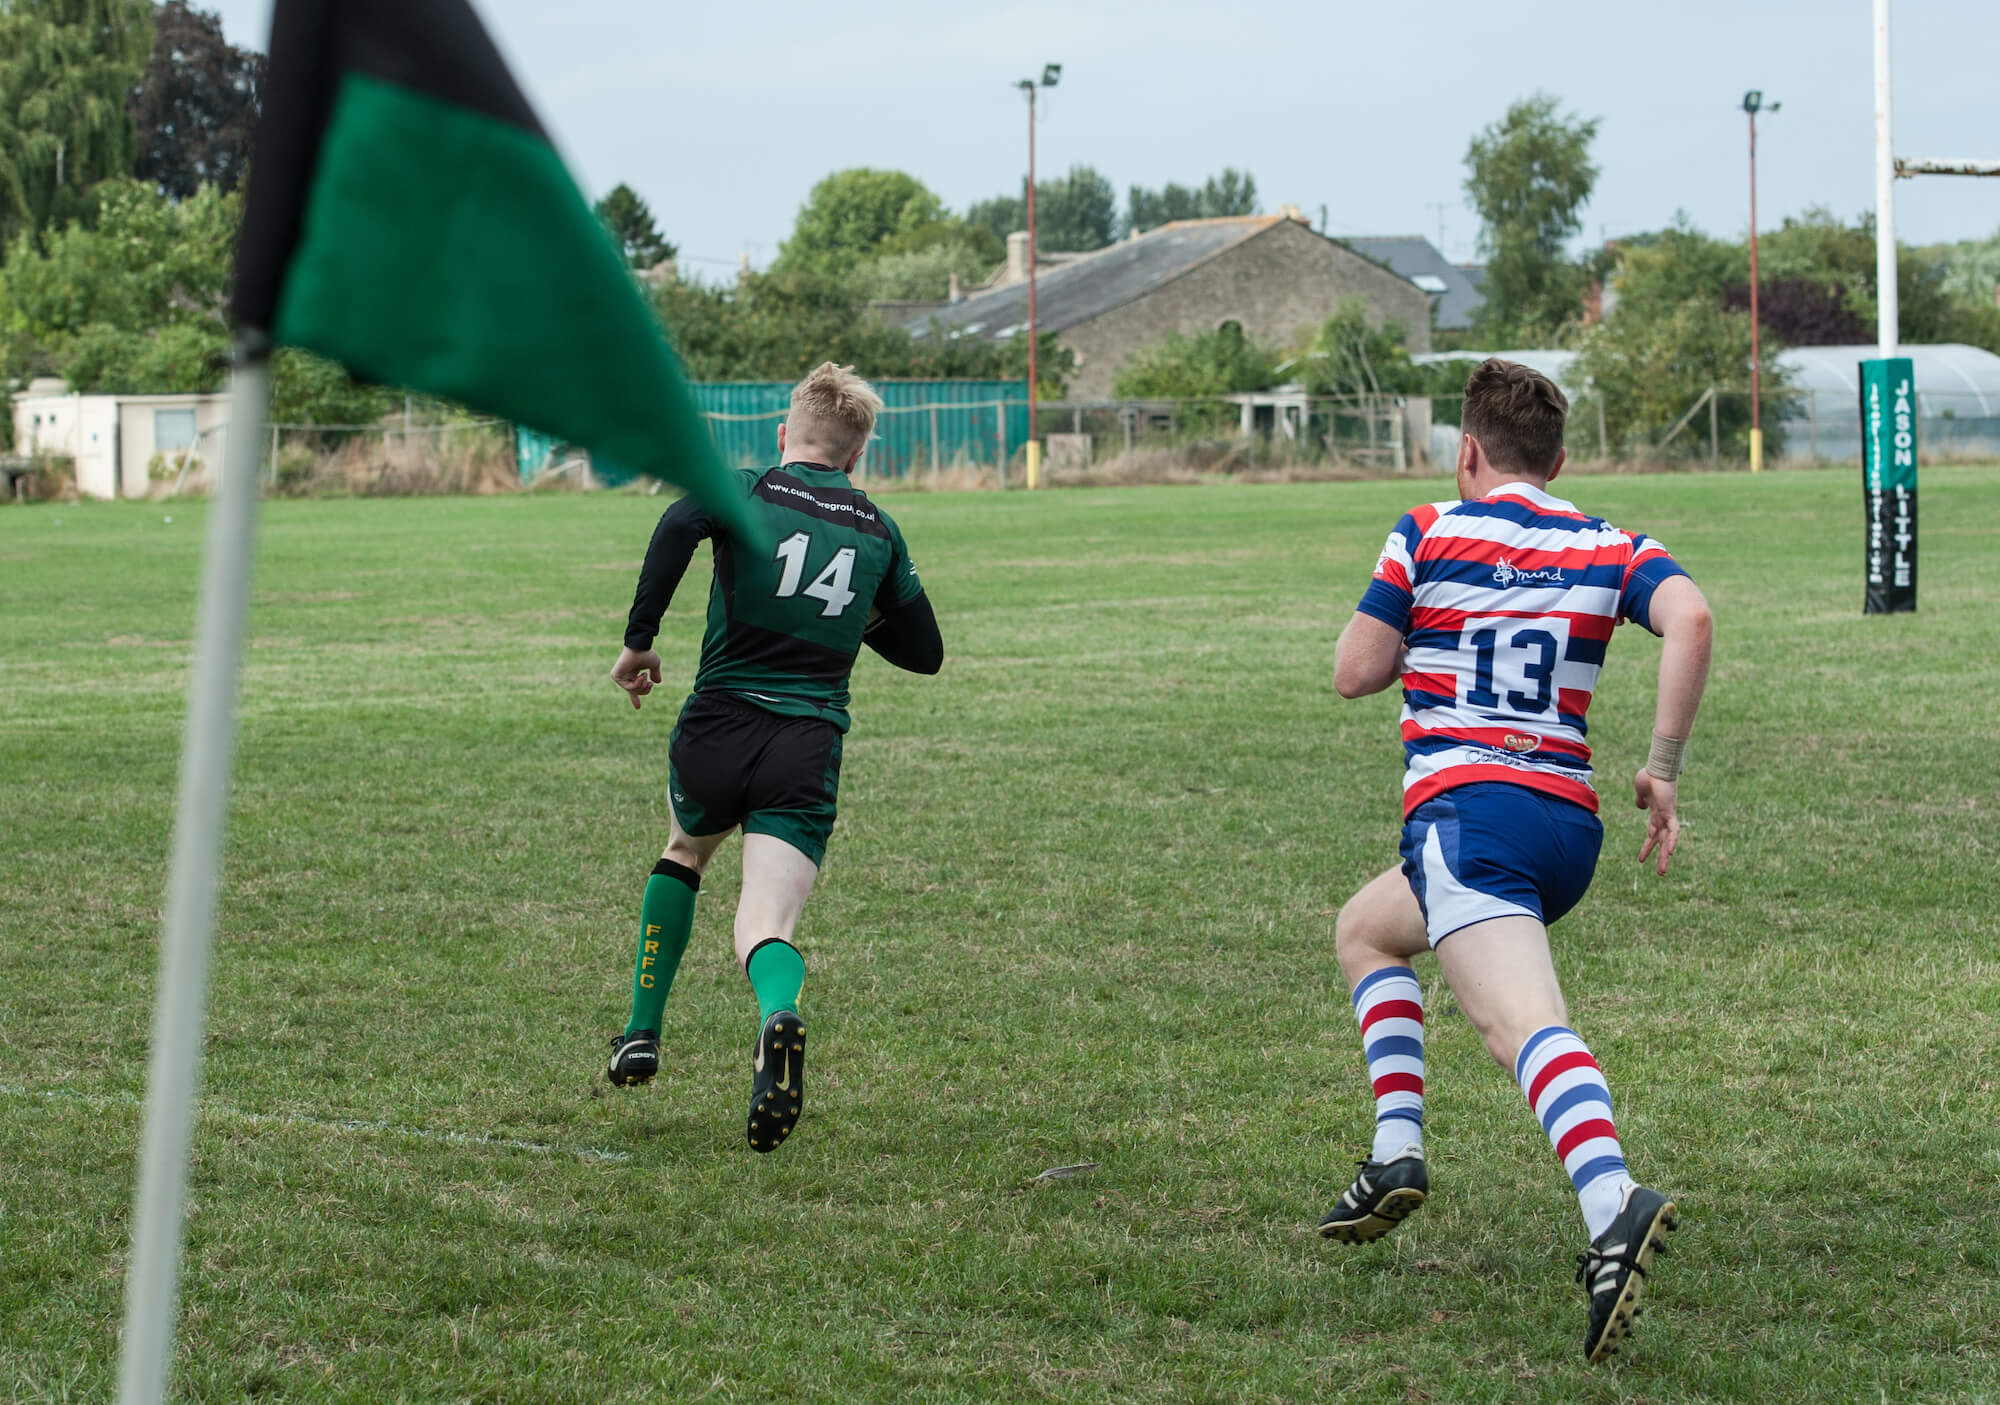 Report: Old Colstonians 20 Fairford 43